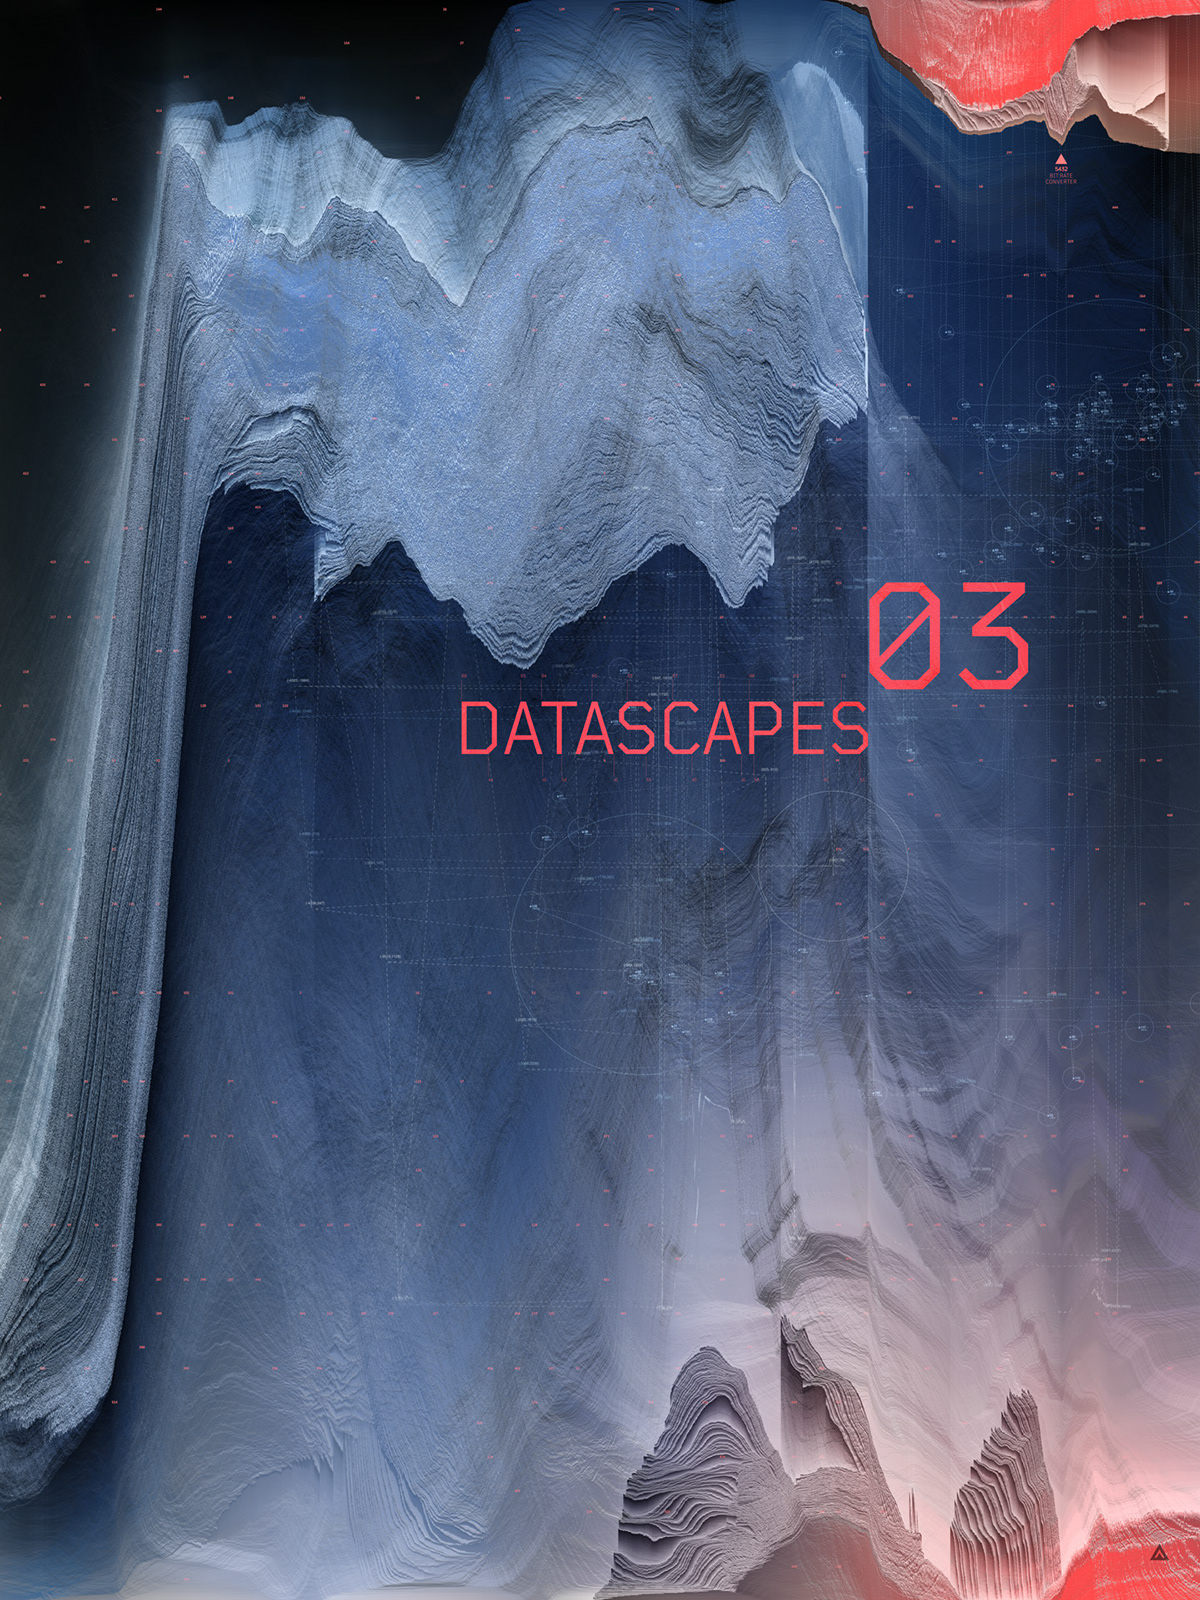 datascapes03.jpg